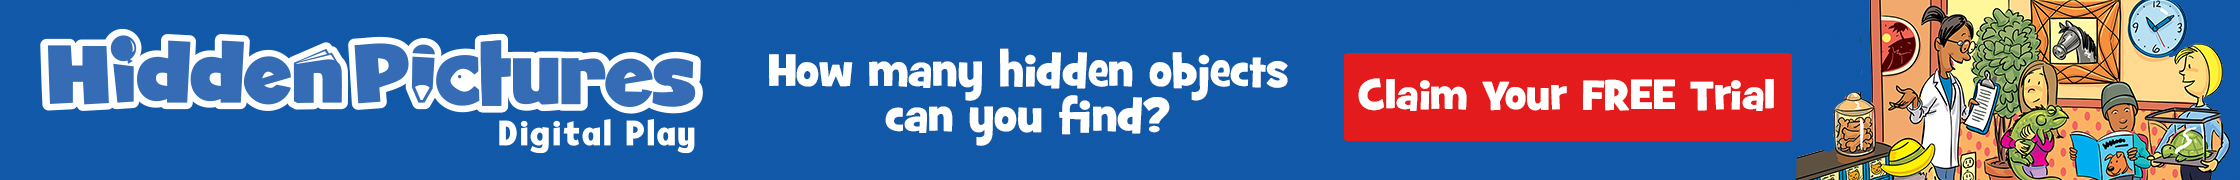 Claim your FREE Trial of Hidden Pictures Digital Play Today.